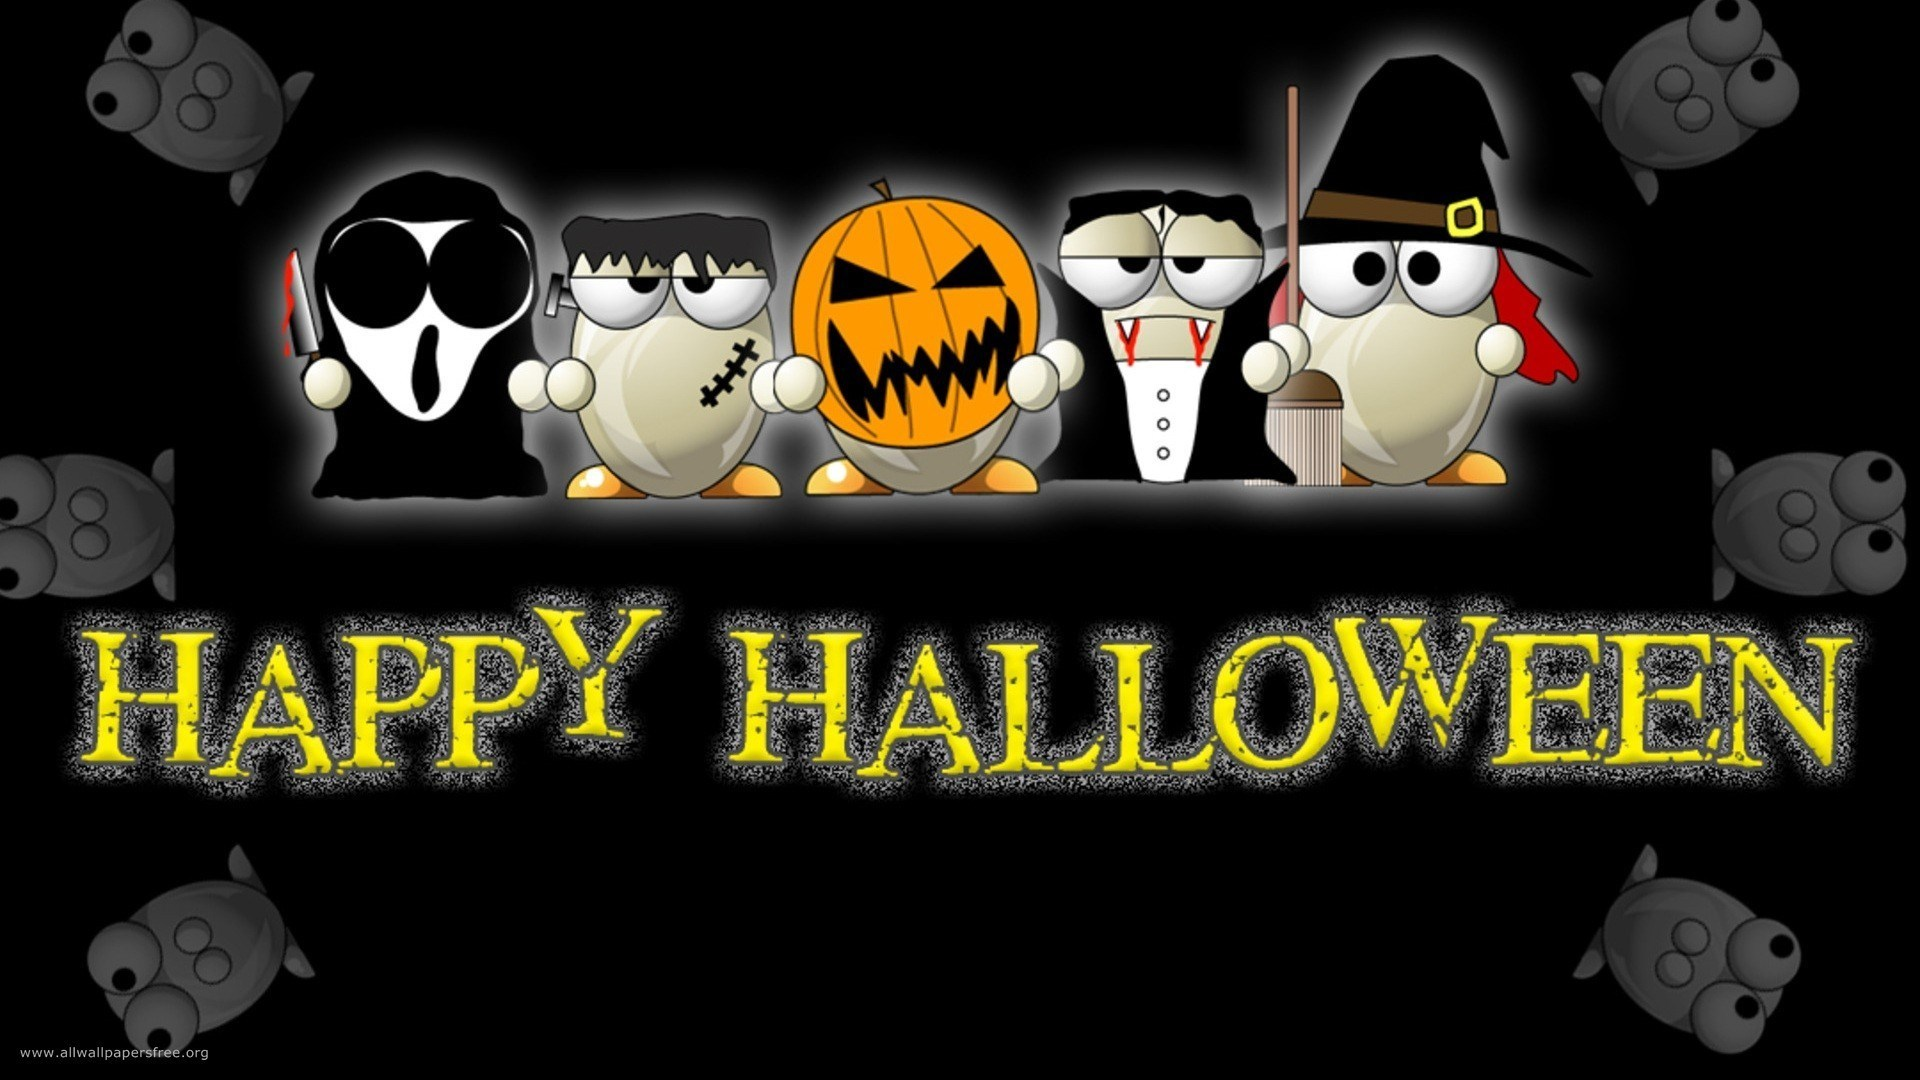 1920x1080-free-halloween-wallpaper-wpc5801047